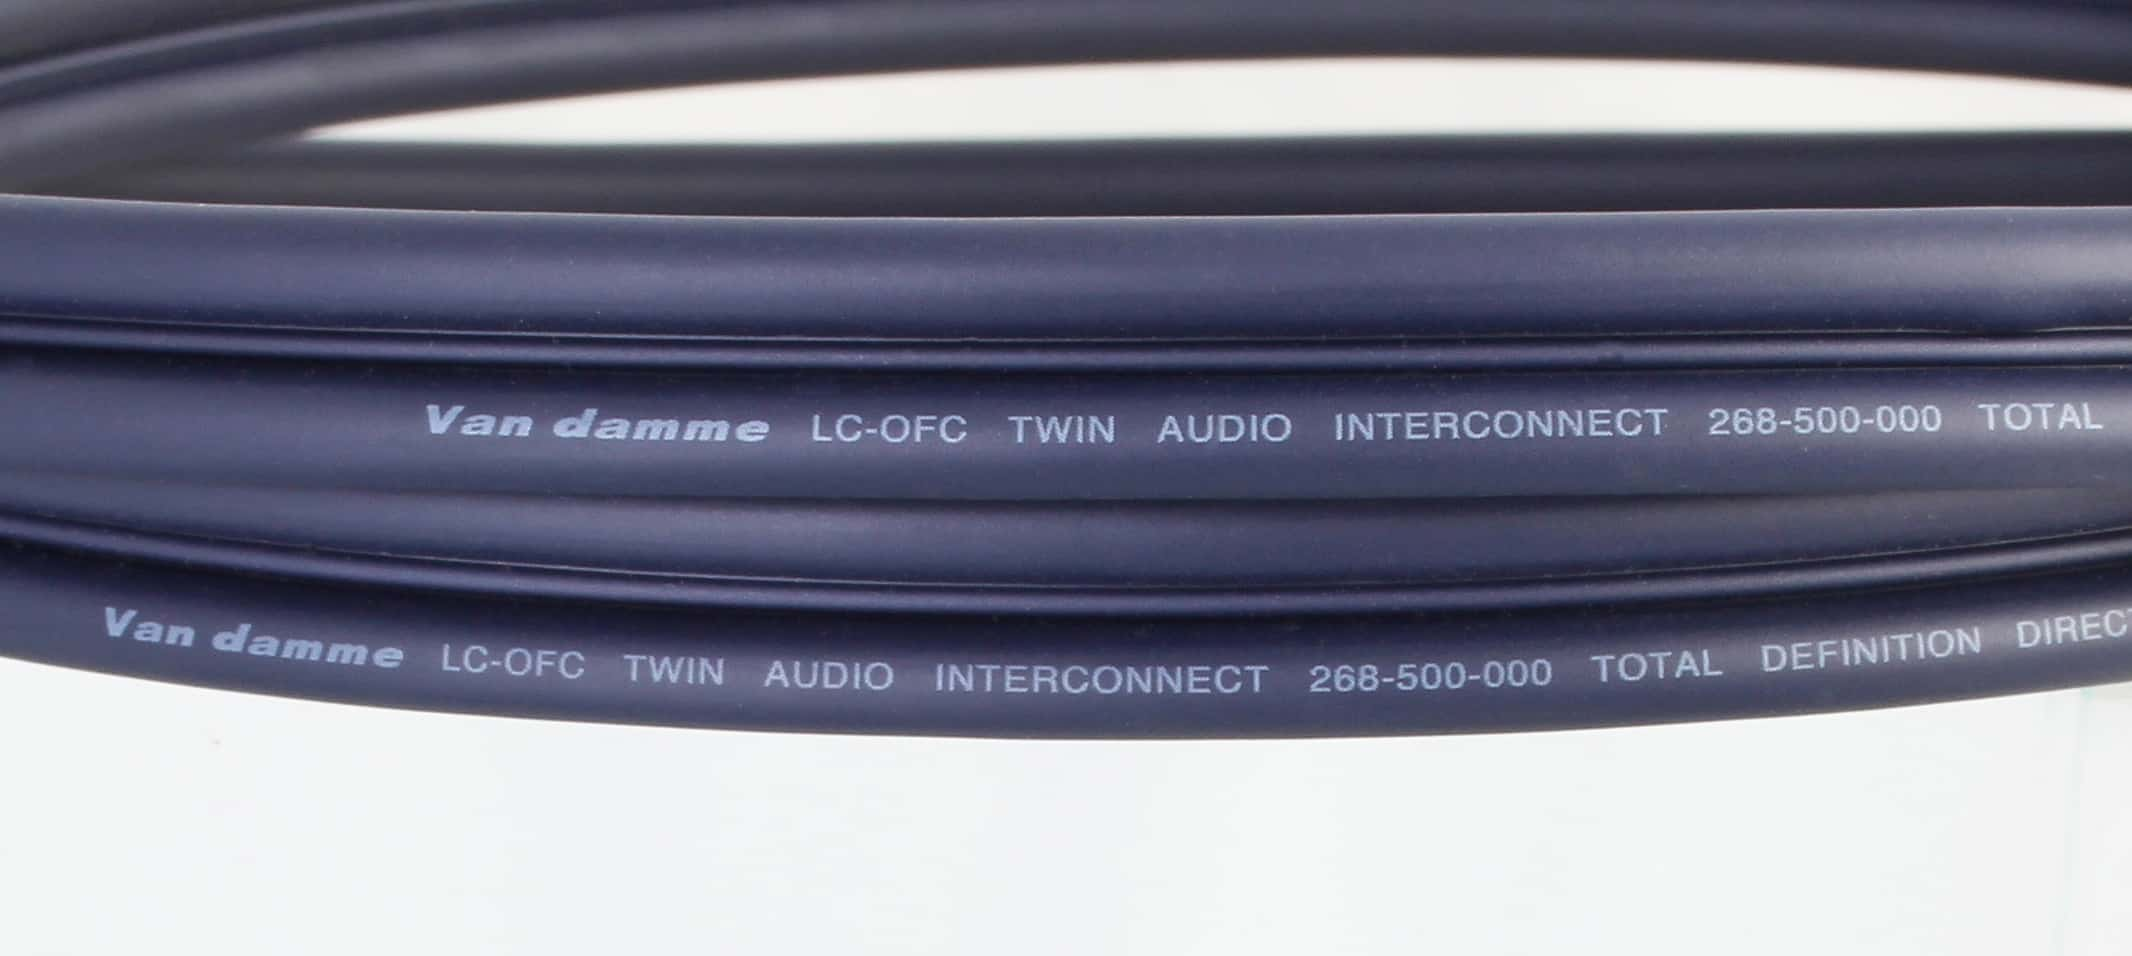 Van Damme Audio Interconnect Cable Neutrik Rean Phono Rca Plugs Plug Wiring